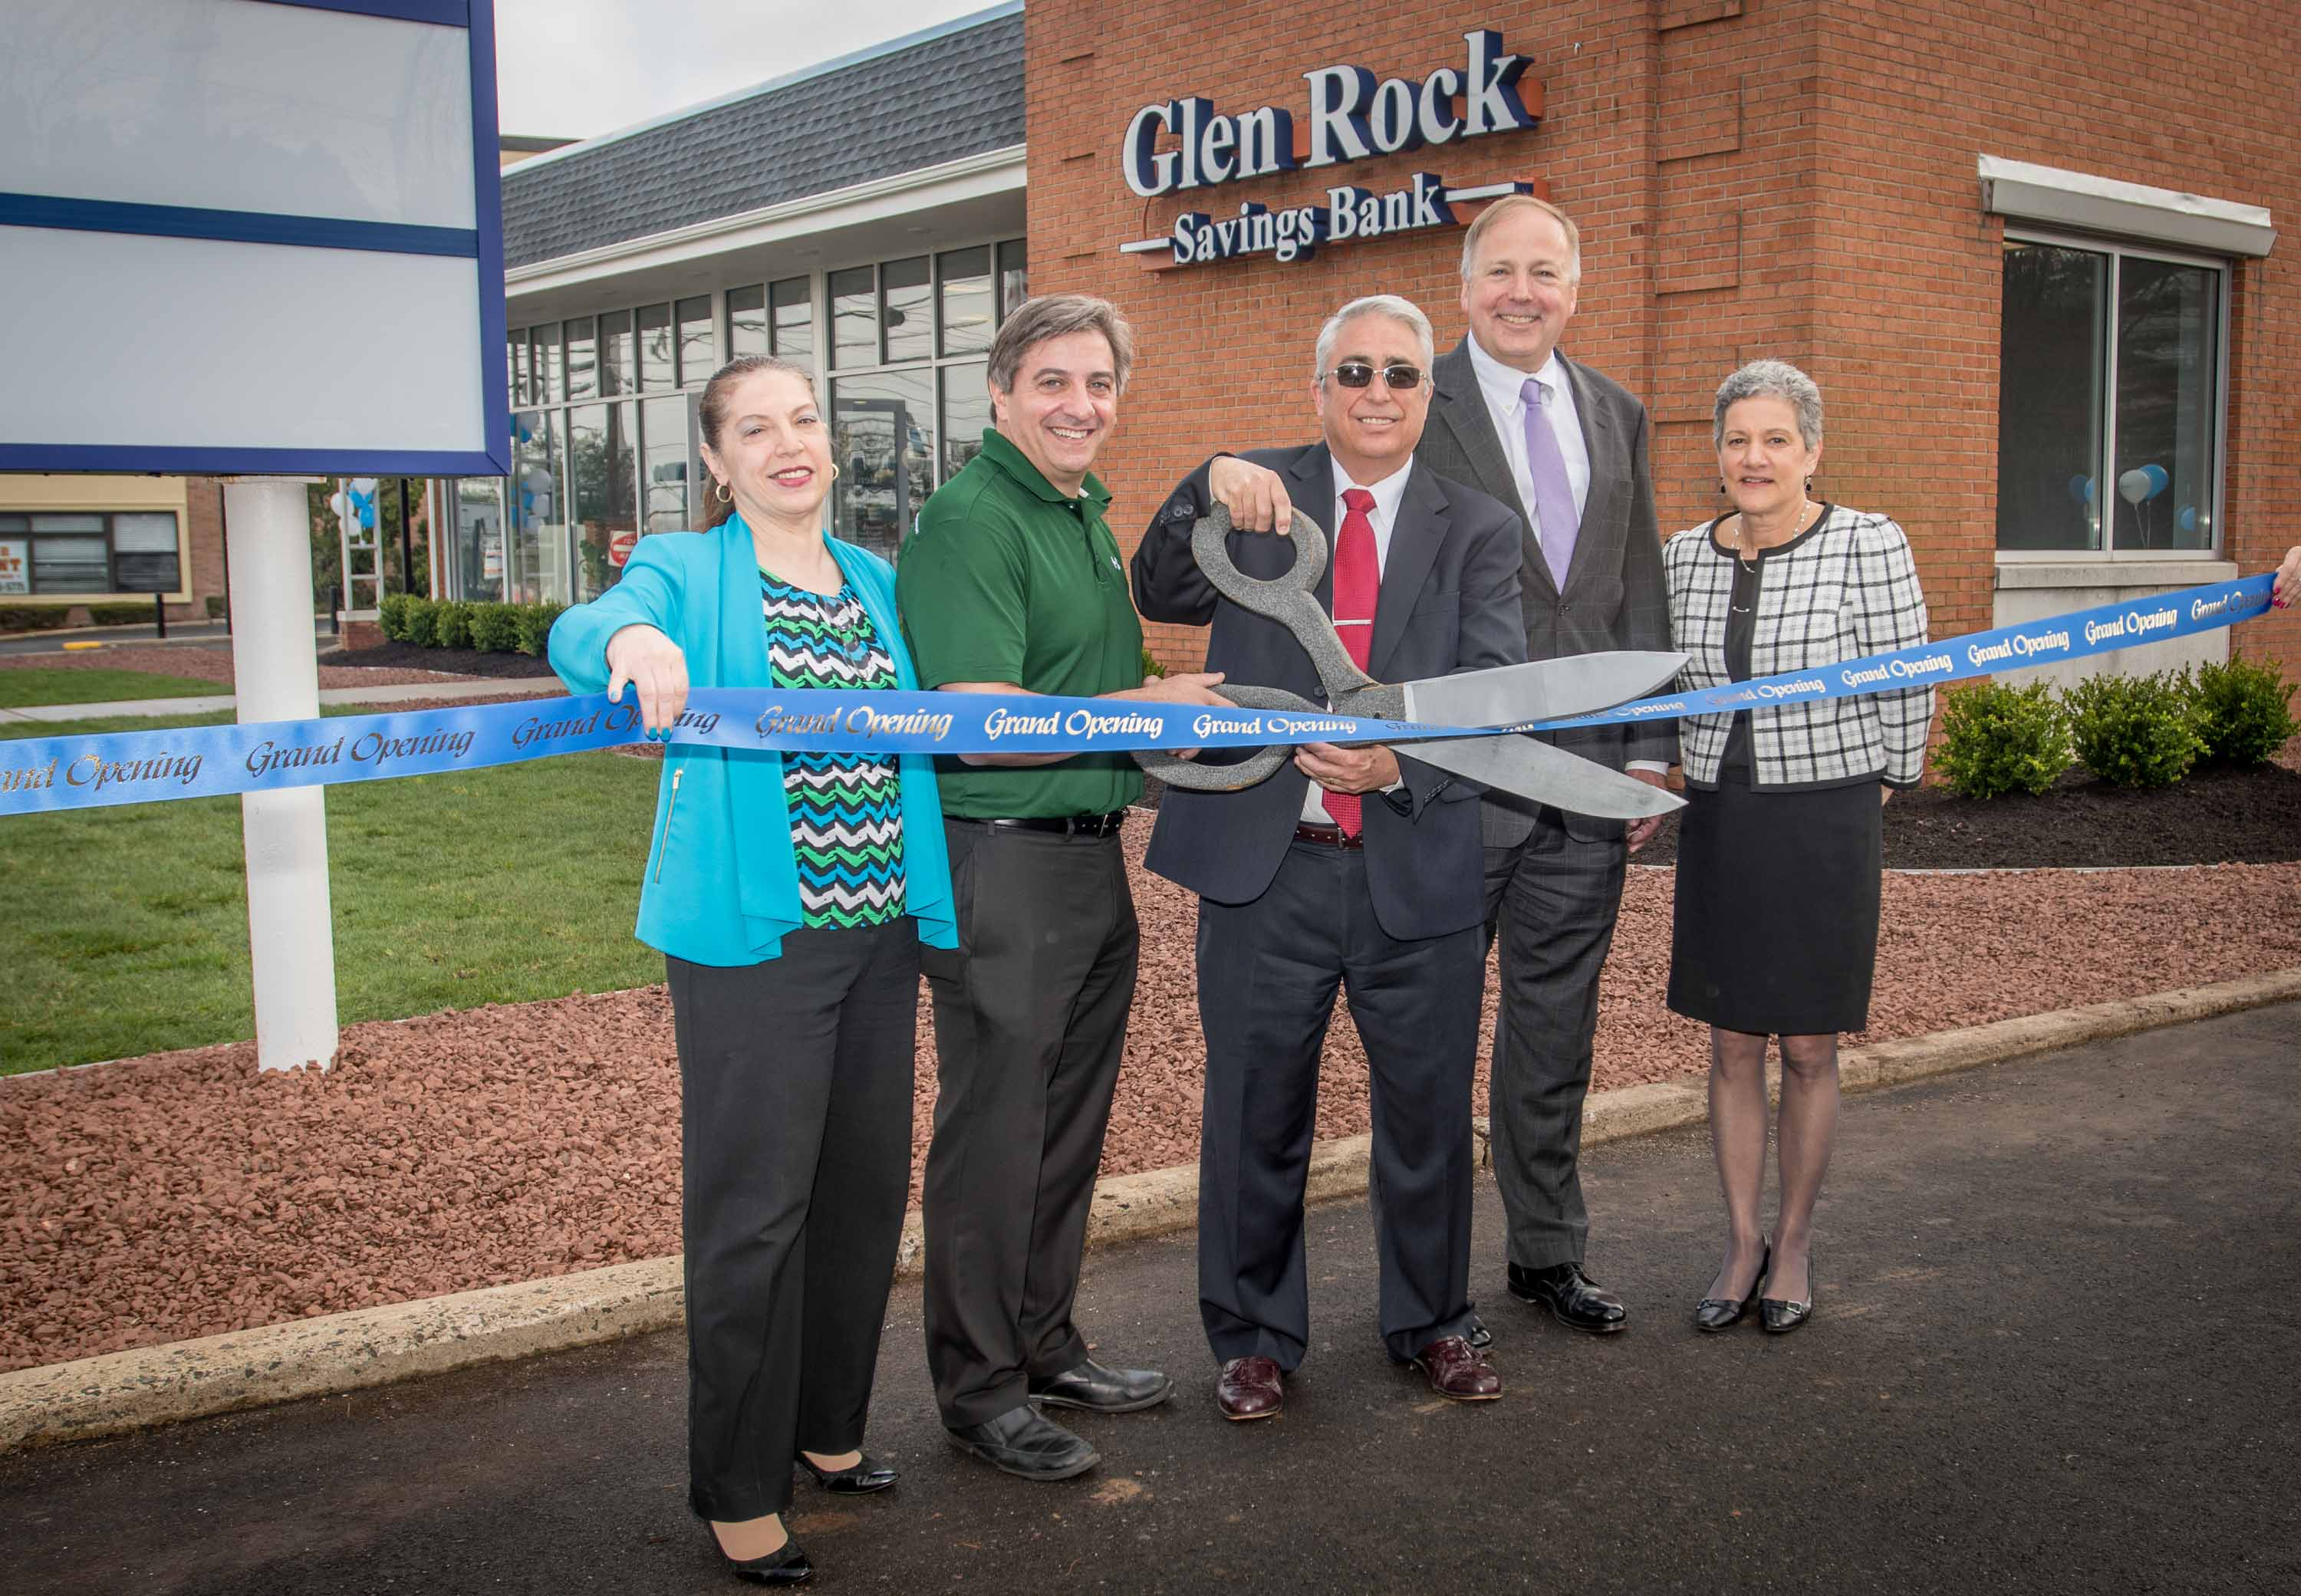 Glen Rock Savings Bank Grand Re Opening 5/5/18